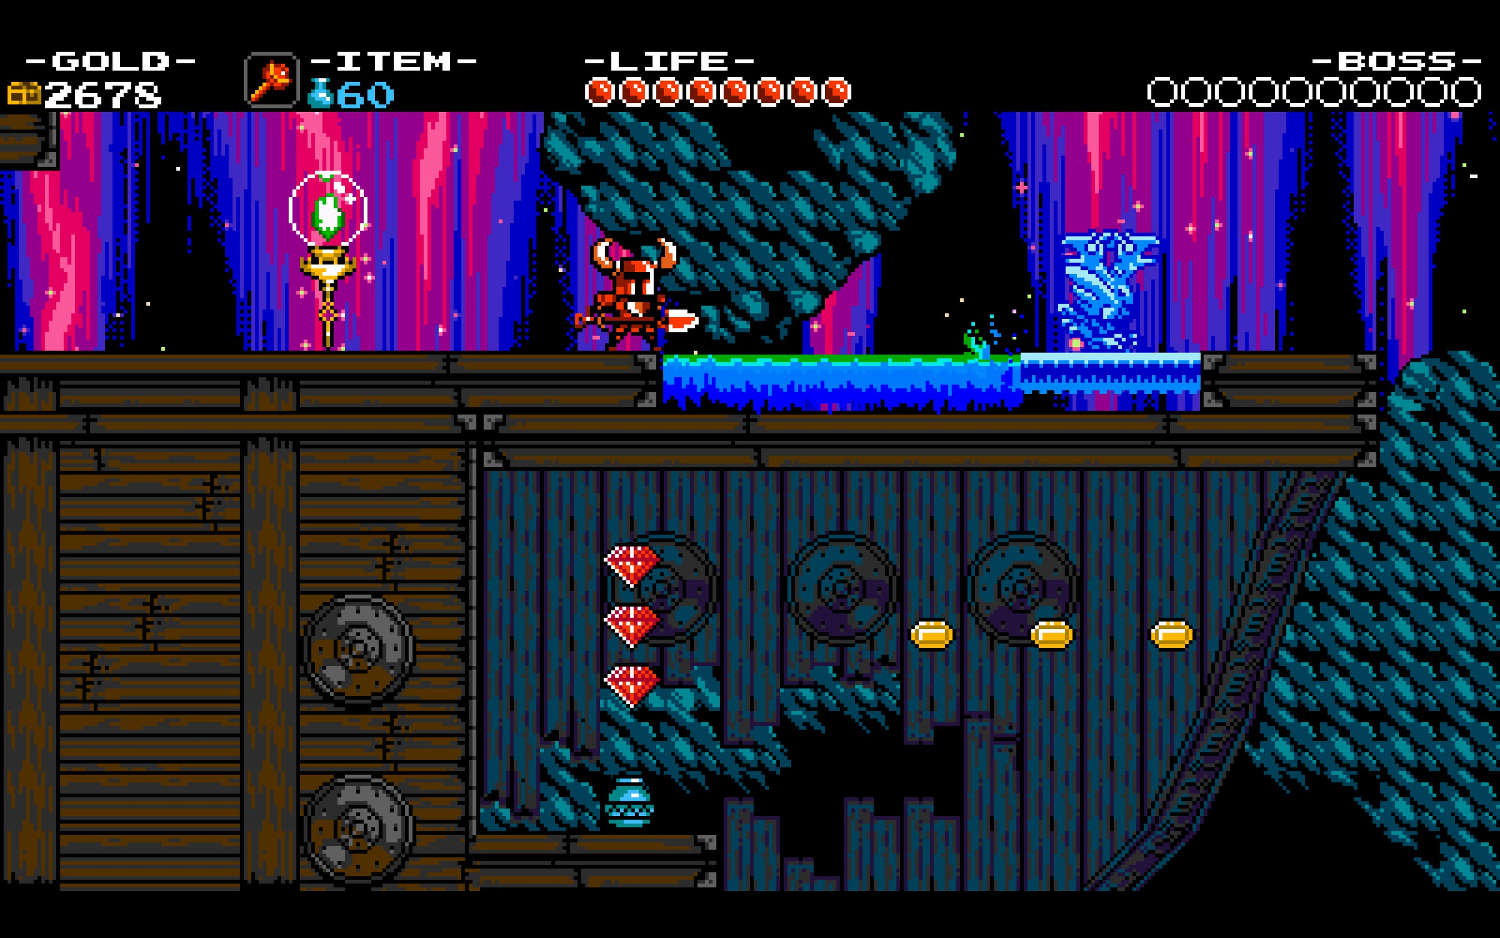 The UI of the game evokes nothing but classic Castlevania, but why tinker with time-proven design?